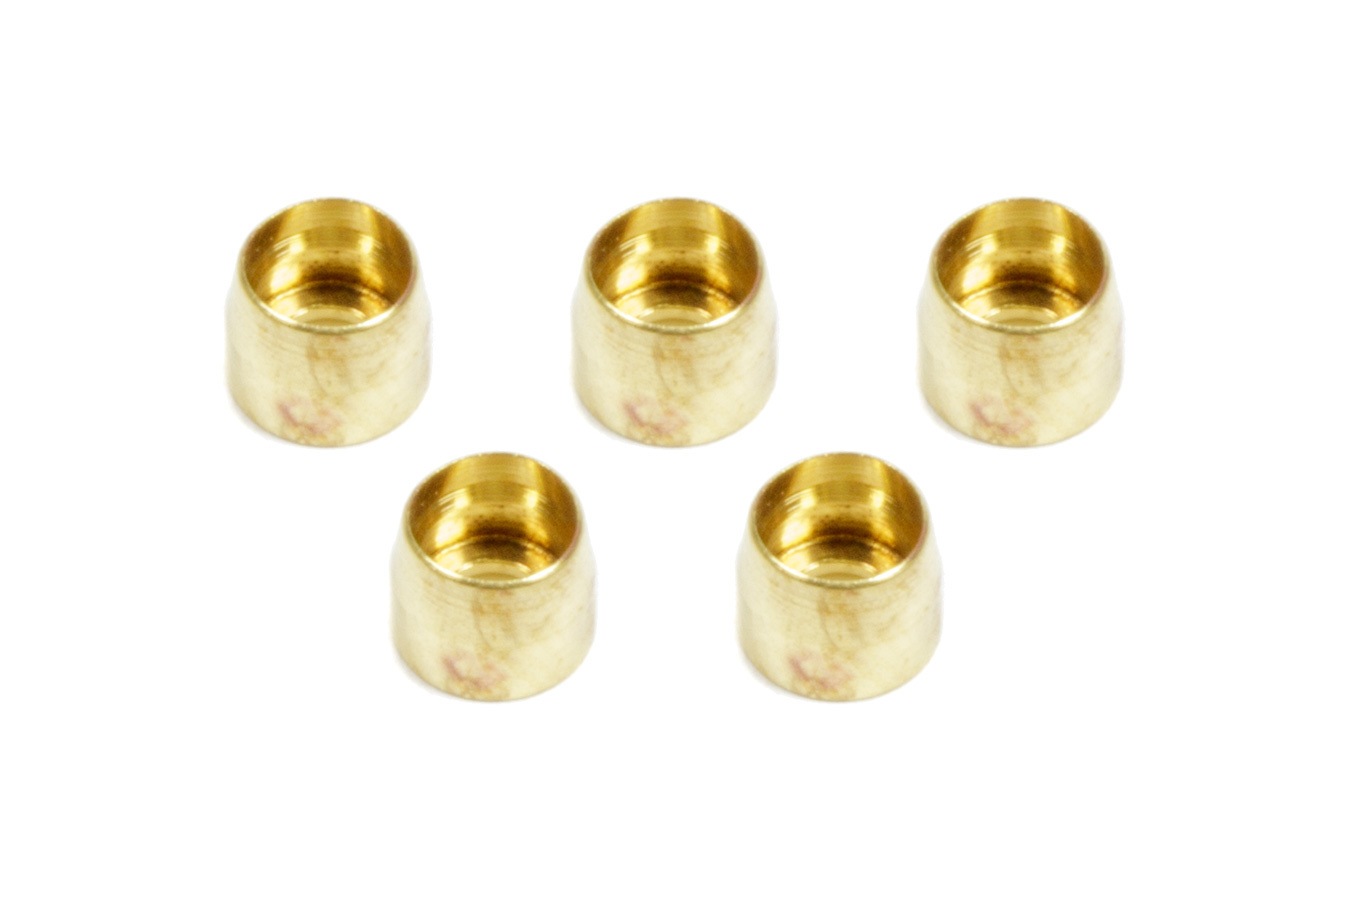 Aeroquip FCM3720 Compression Ferrule, 3 AN, Brass, PTFE Fittings, Set of 5